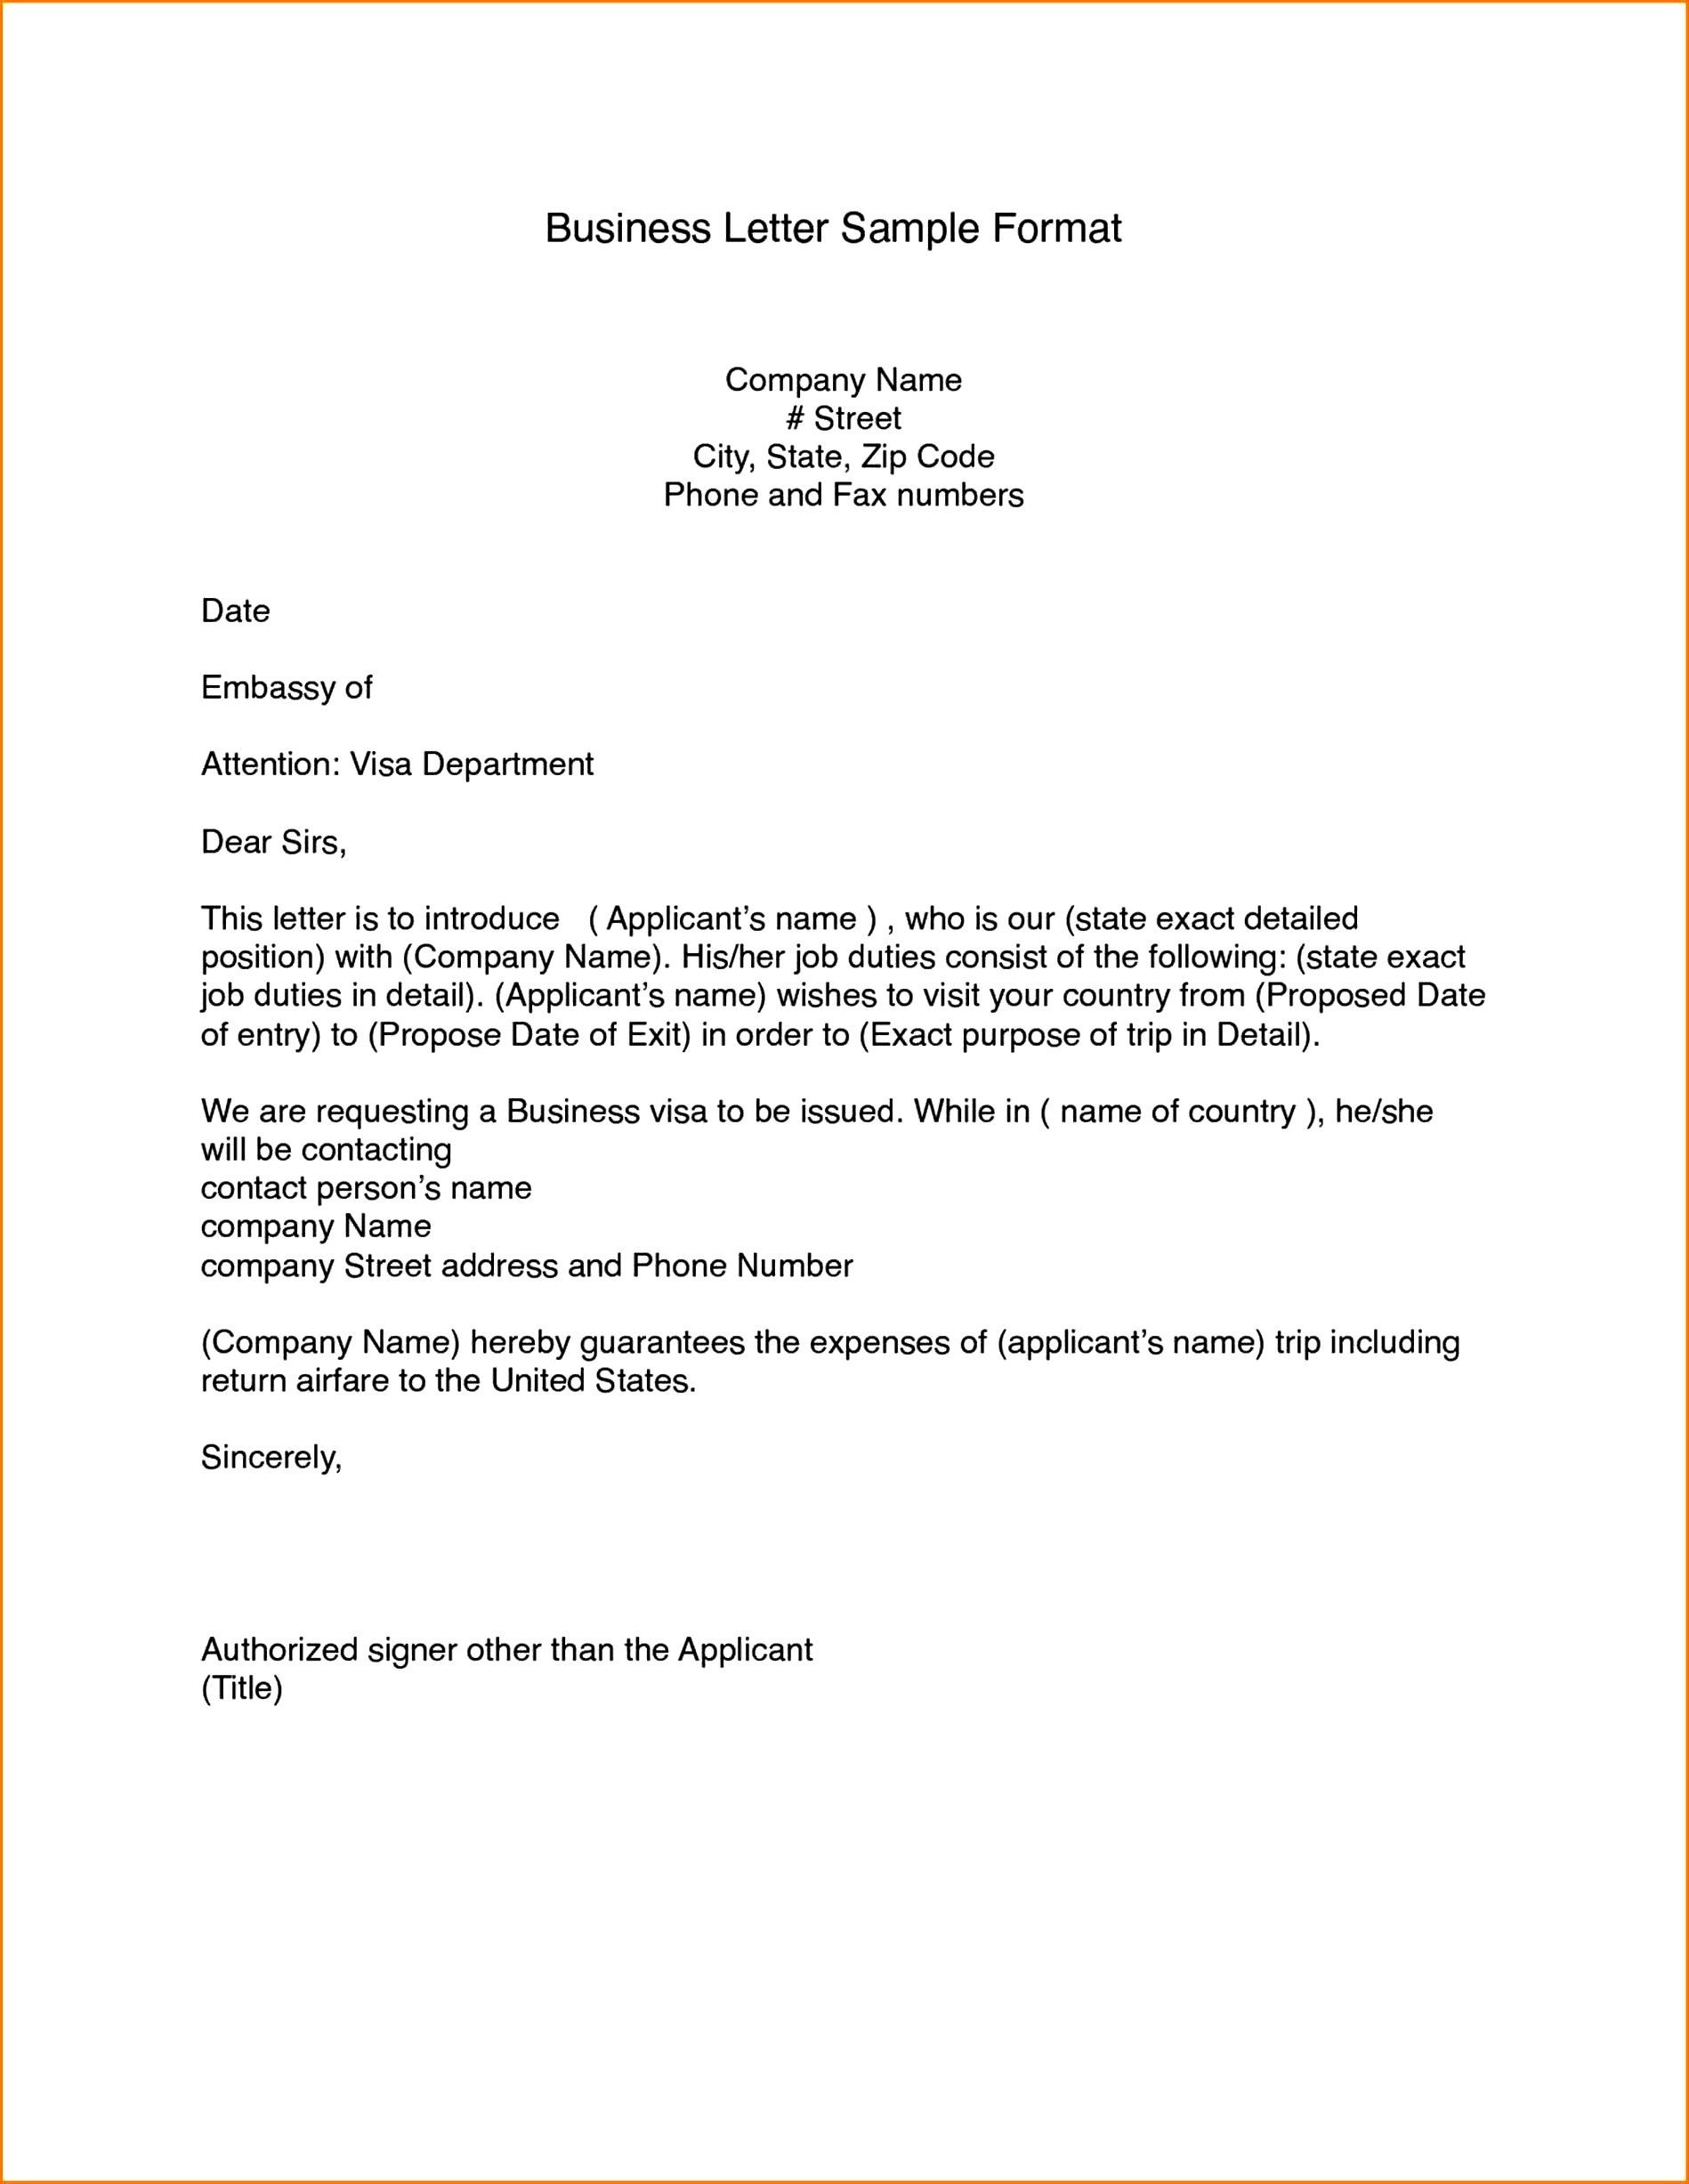 Business Letter Format Template PDF, Word, Excel